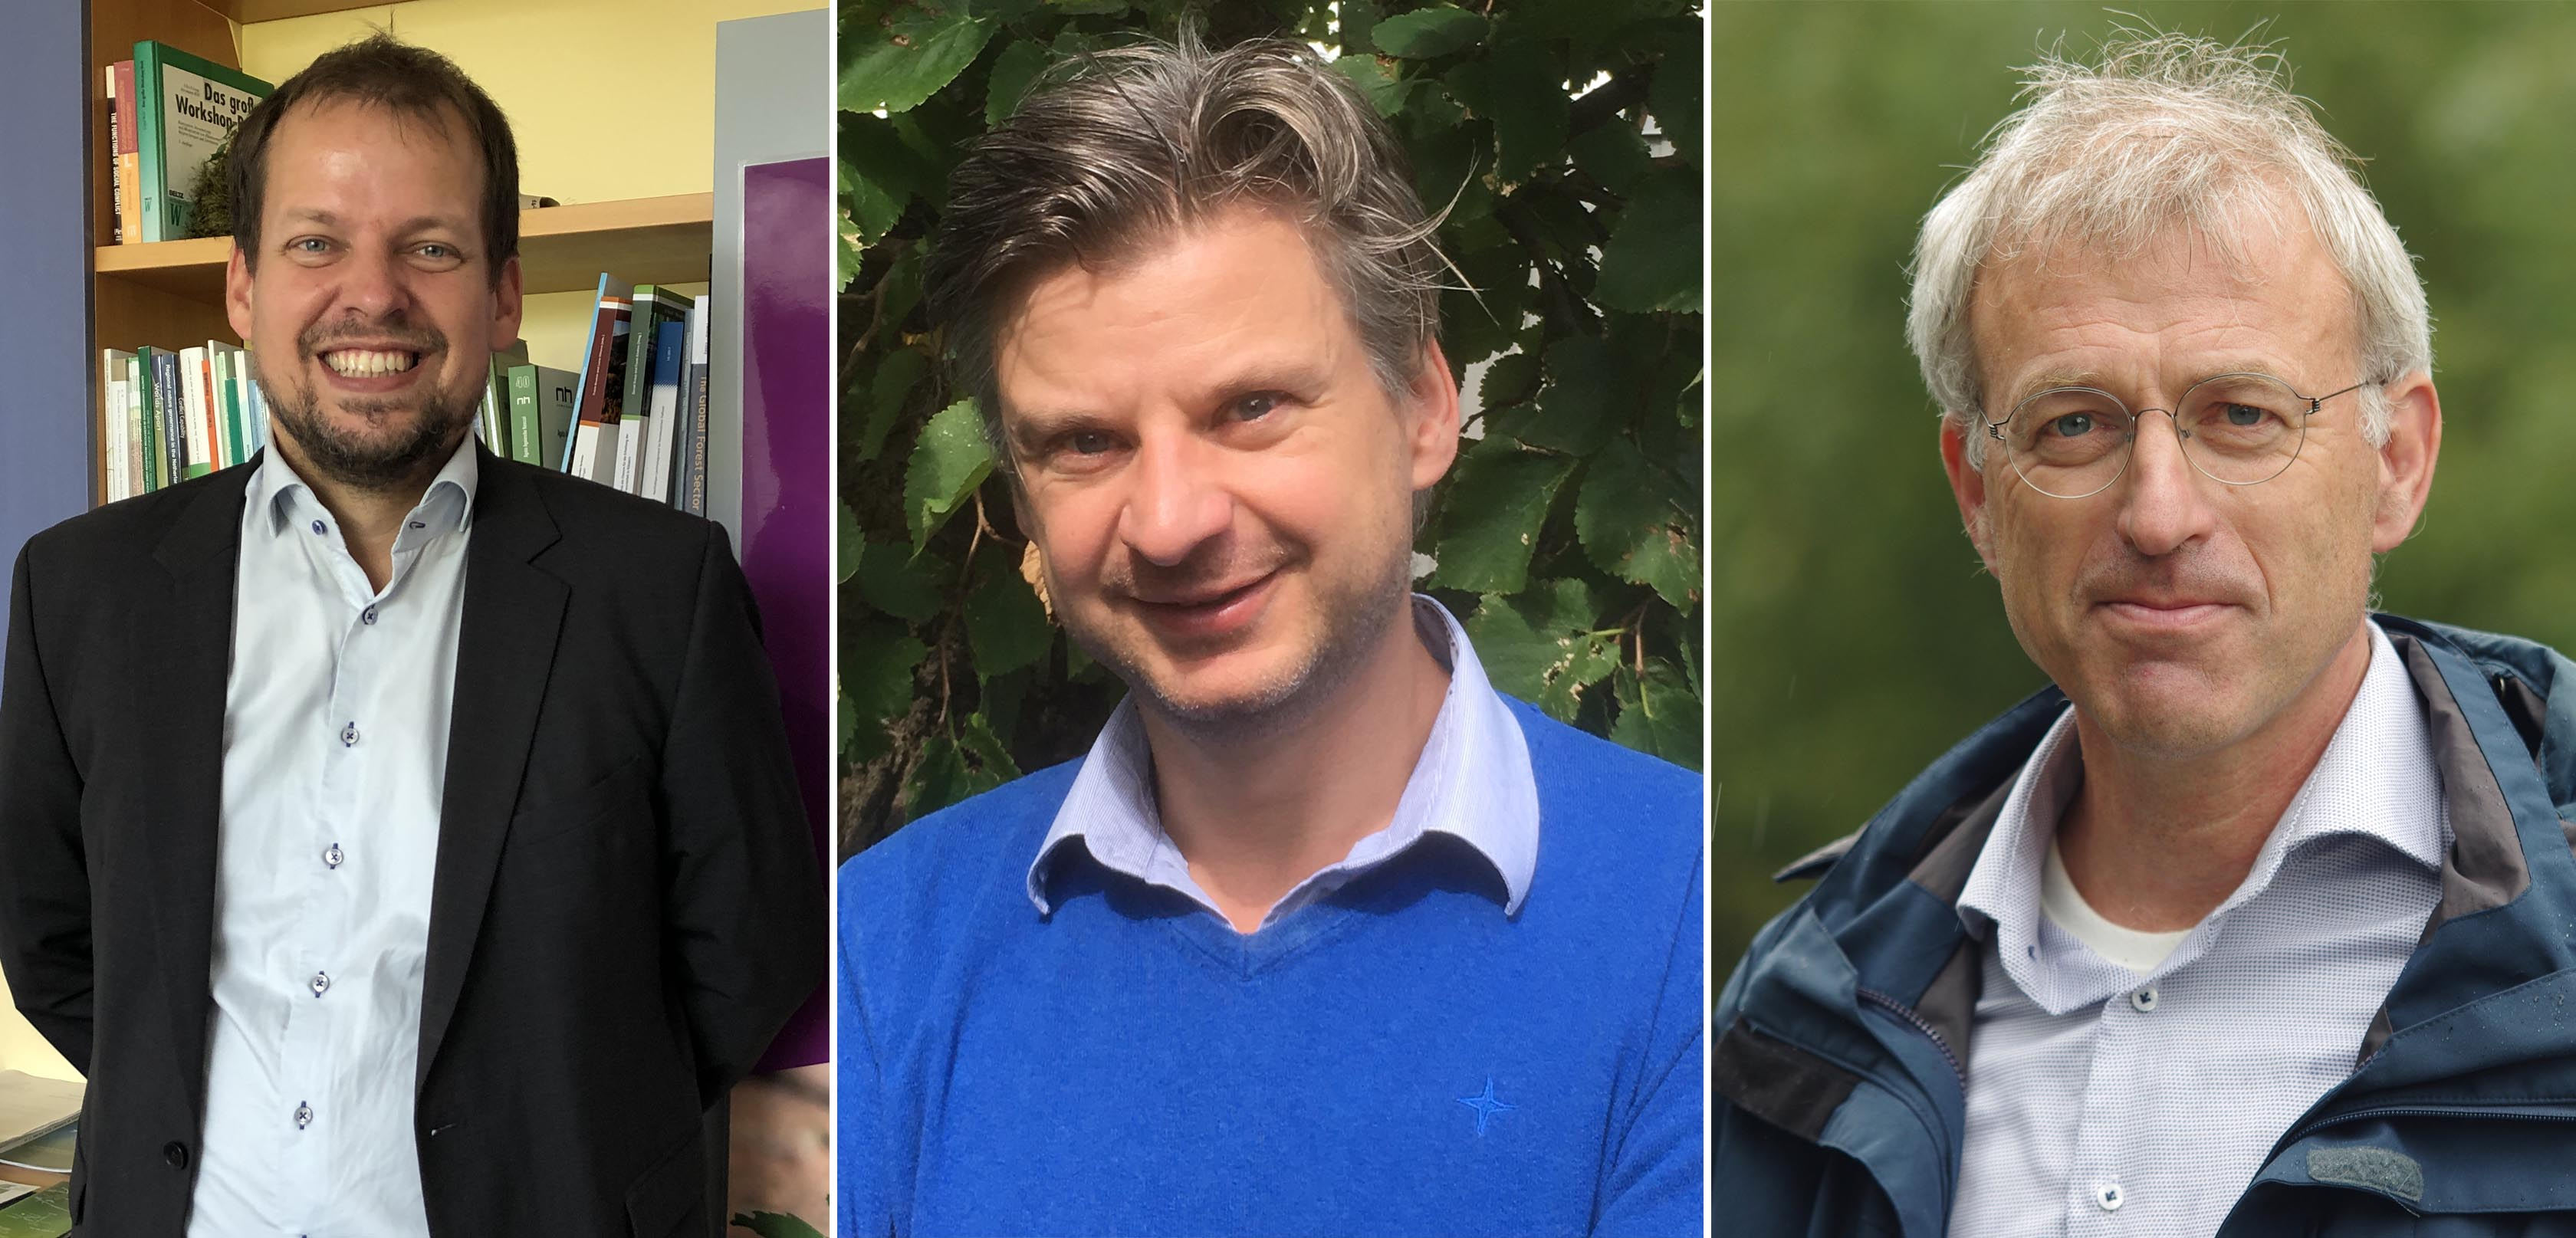 From left to right: Professor Georg Winkel, Professor Erik Meers, and Dr Wouter Helmer. Image credit - Jose Bolaños, Prof. Erik Meers, Rob Buiter